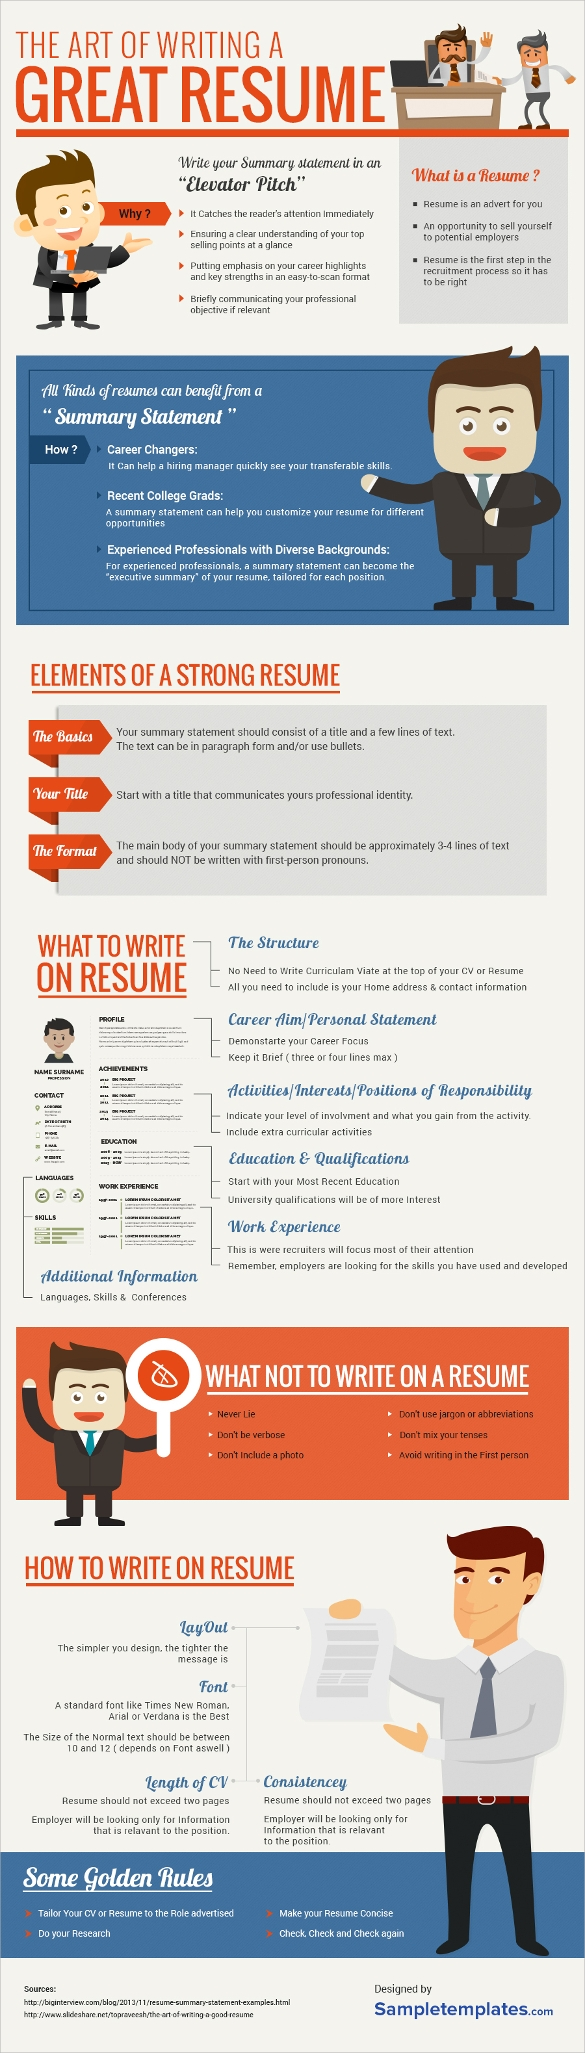 the art of writing a perfect resume featured photo credit sampletemplates via images sampletemplates com